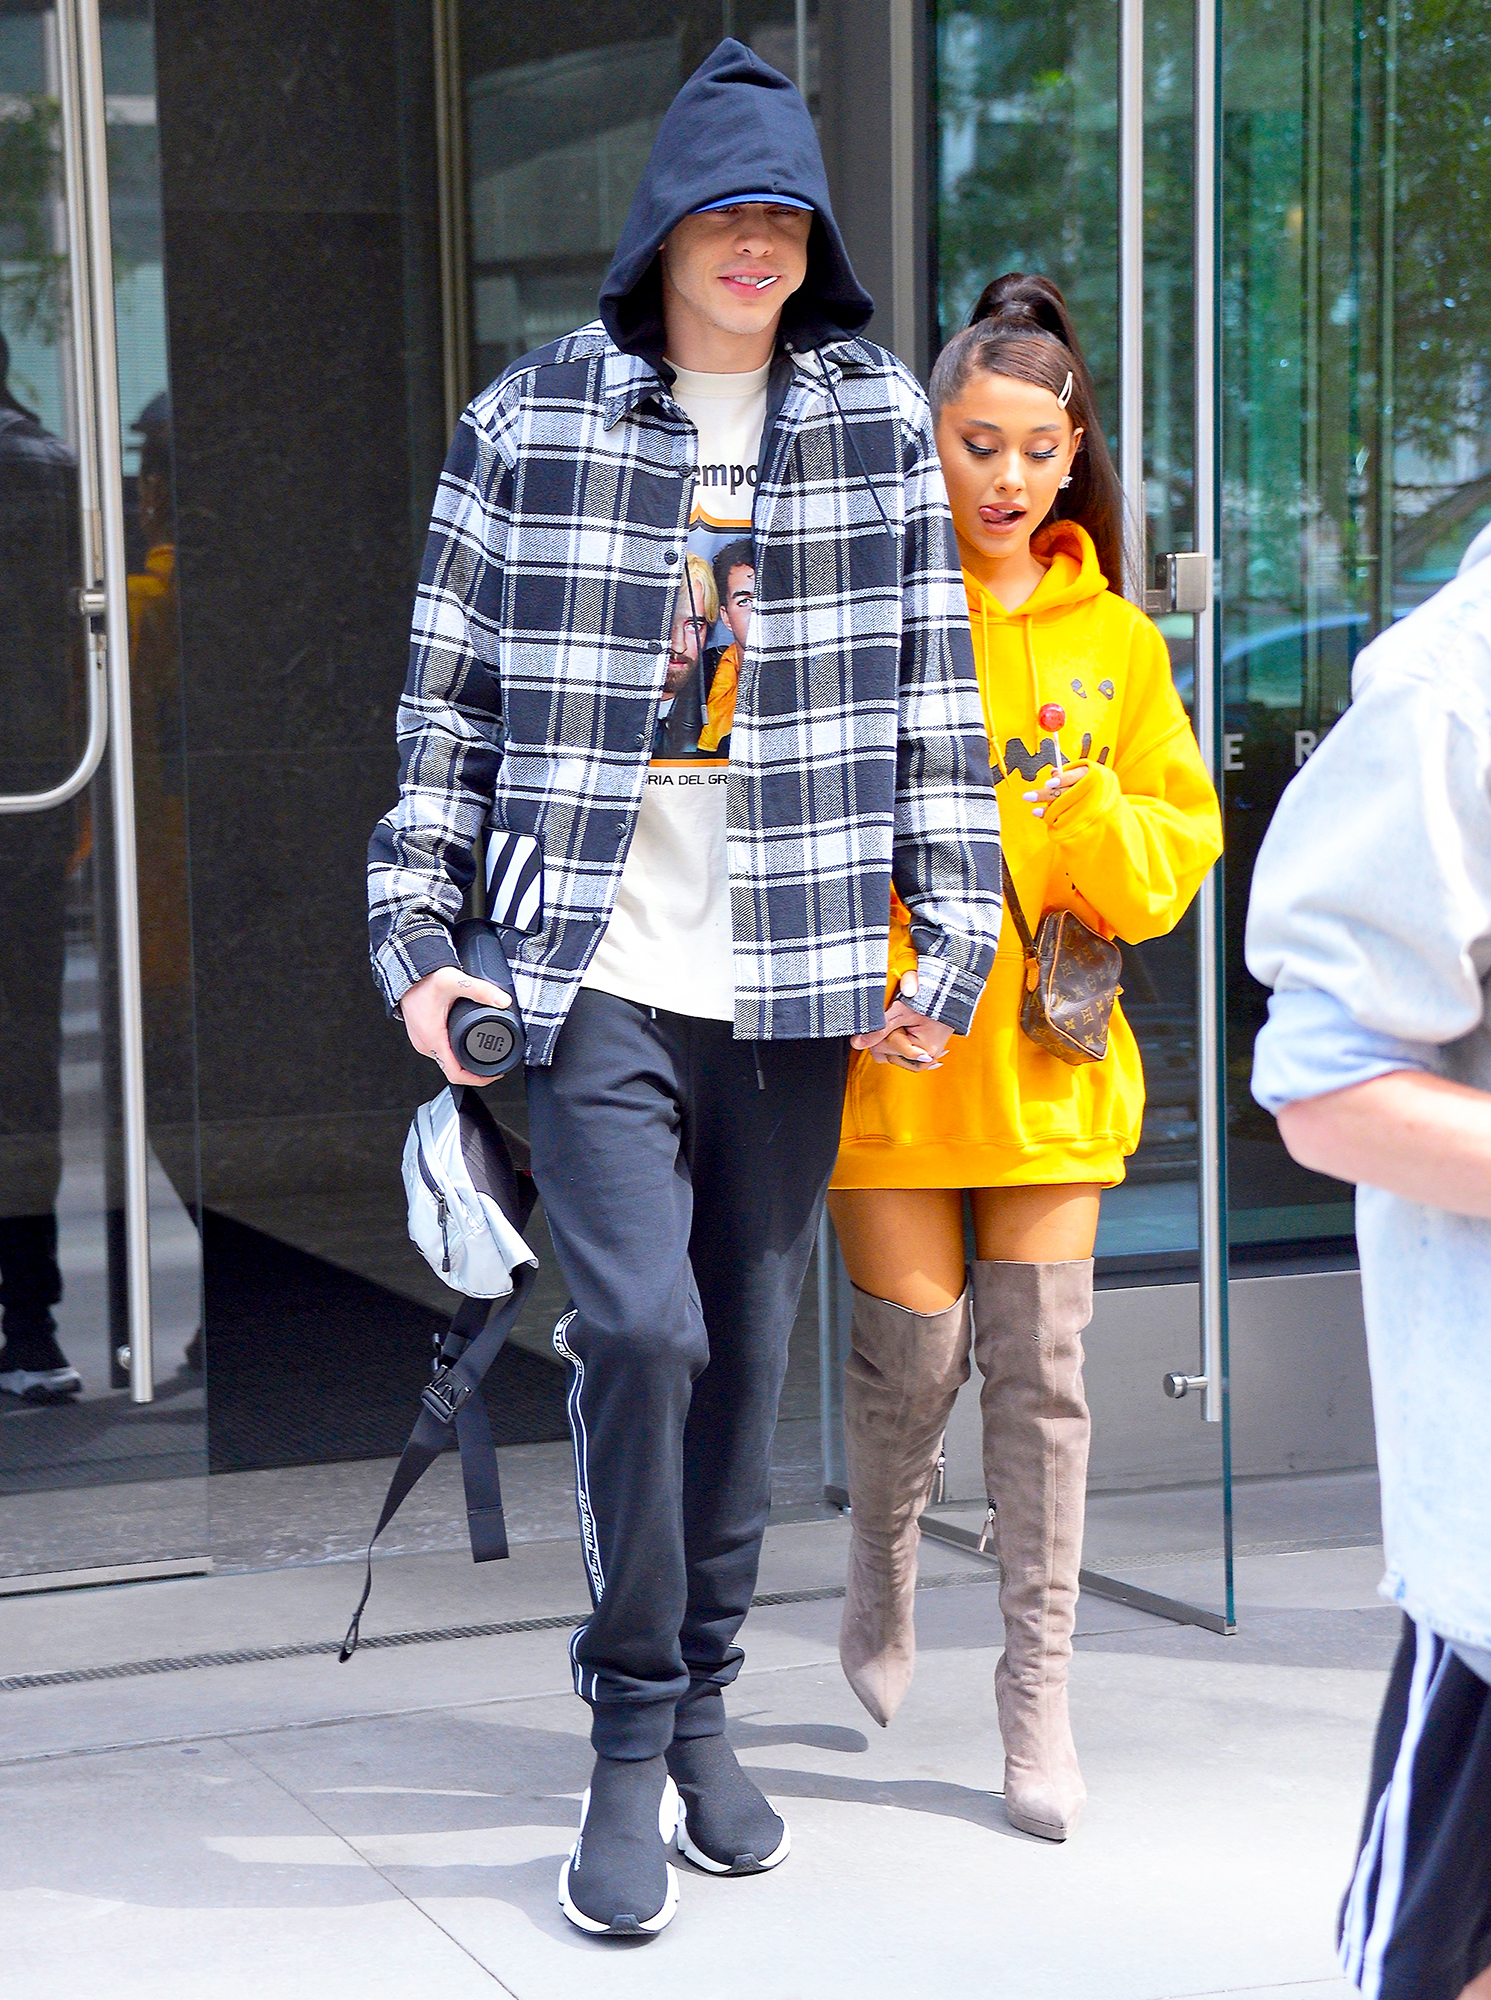 Ariana Grande and Pete Davidson step out on June 20, 2018 in New York City.